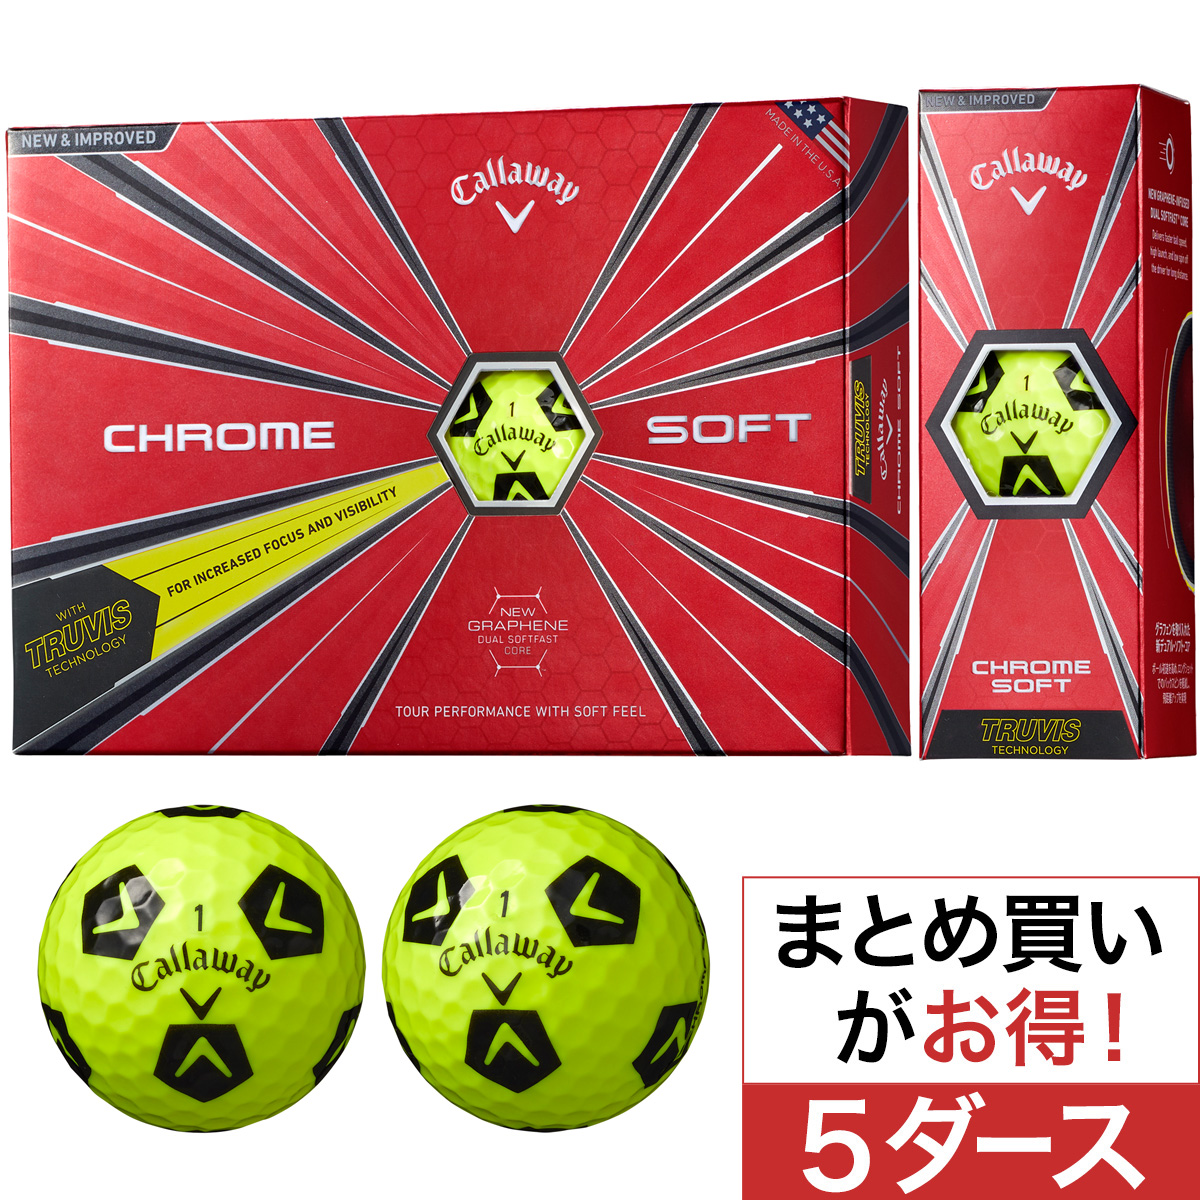 CHROME SOFT TRUVIS ボール 5ダースセット